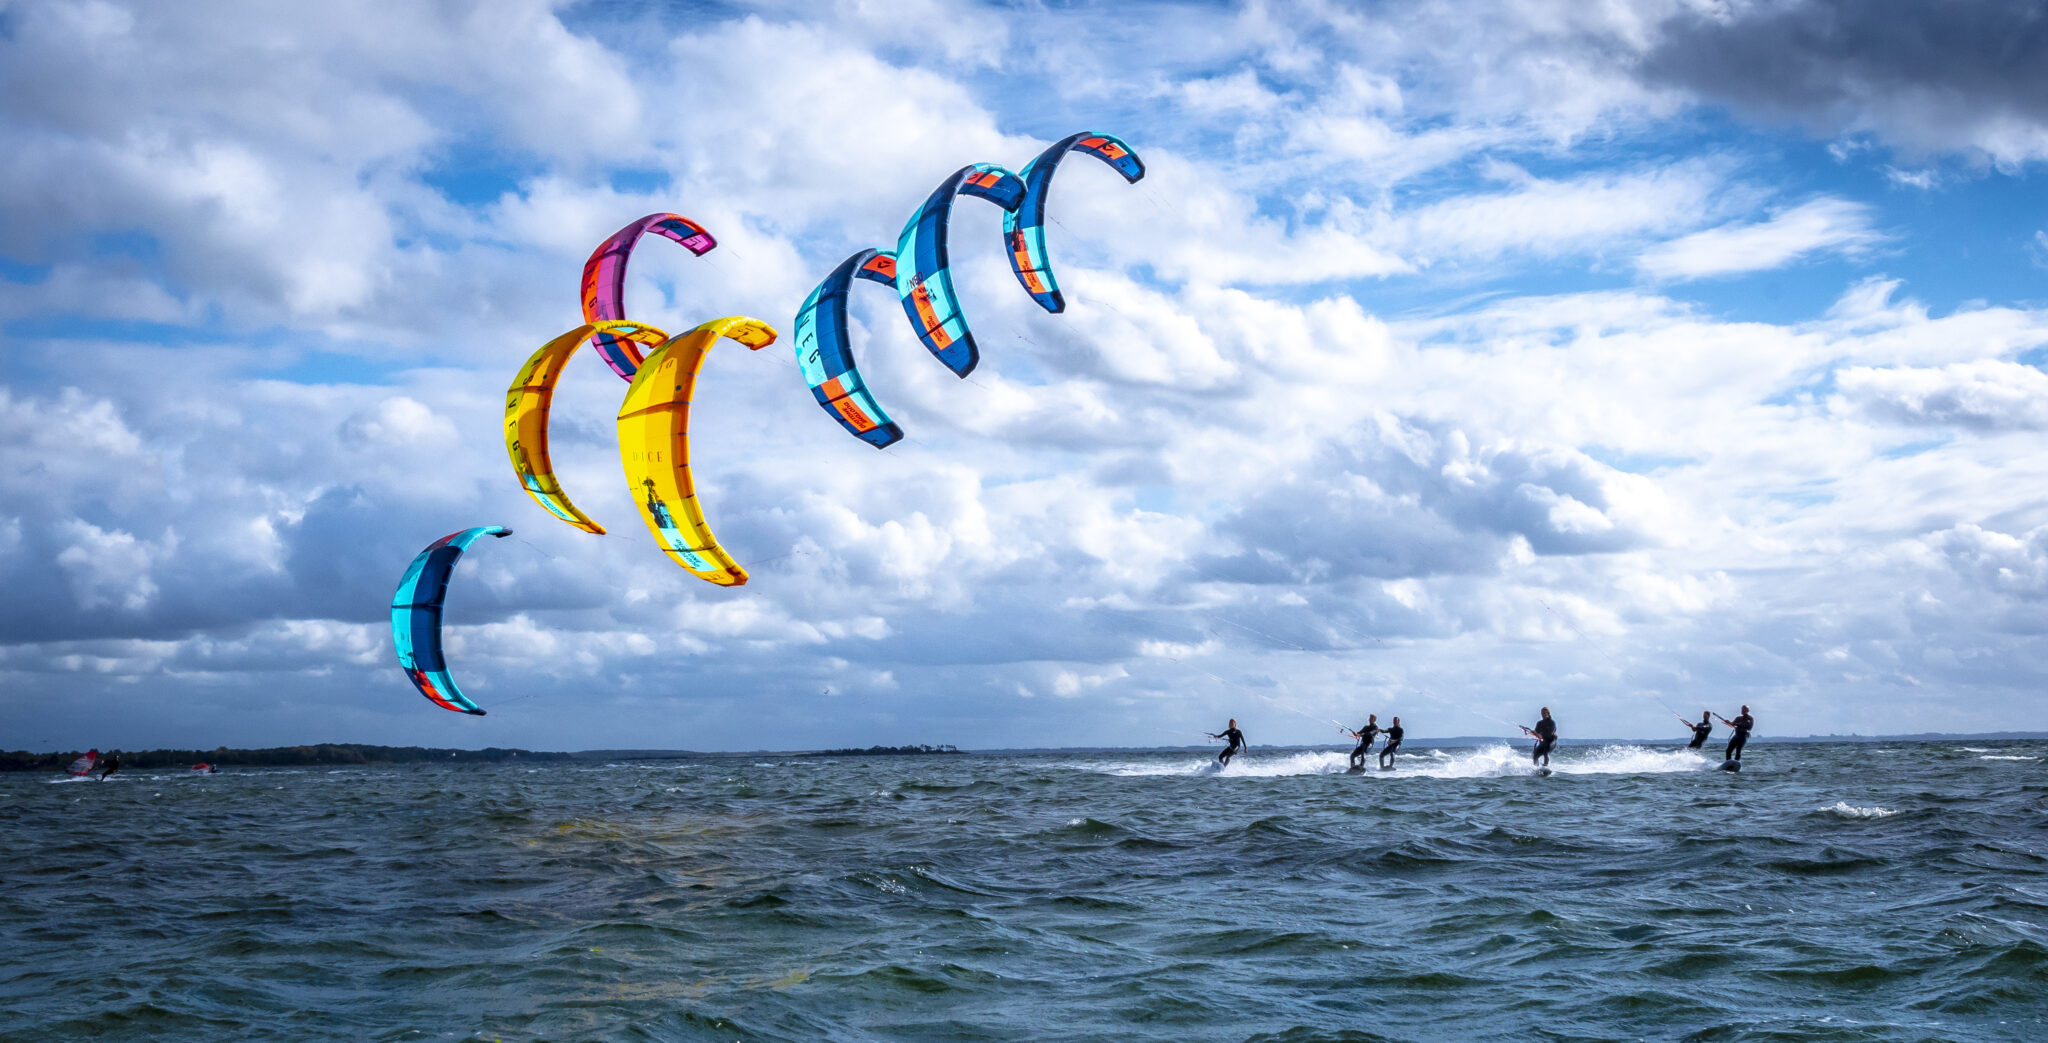 Kitesurfers out on photo shoot